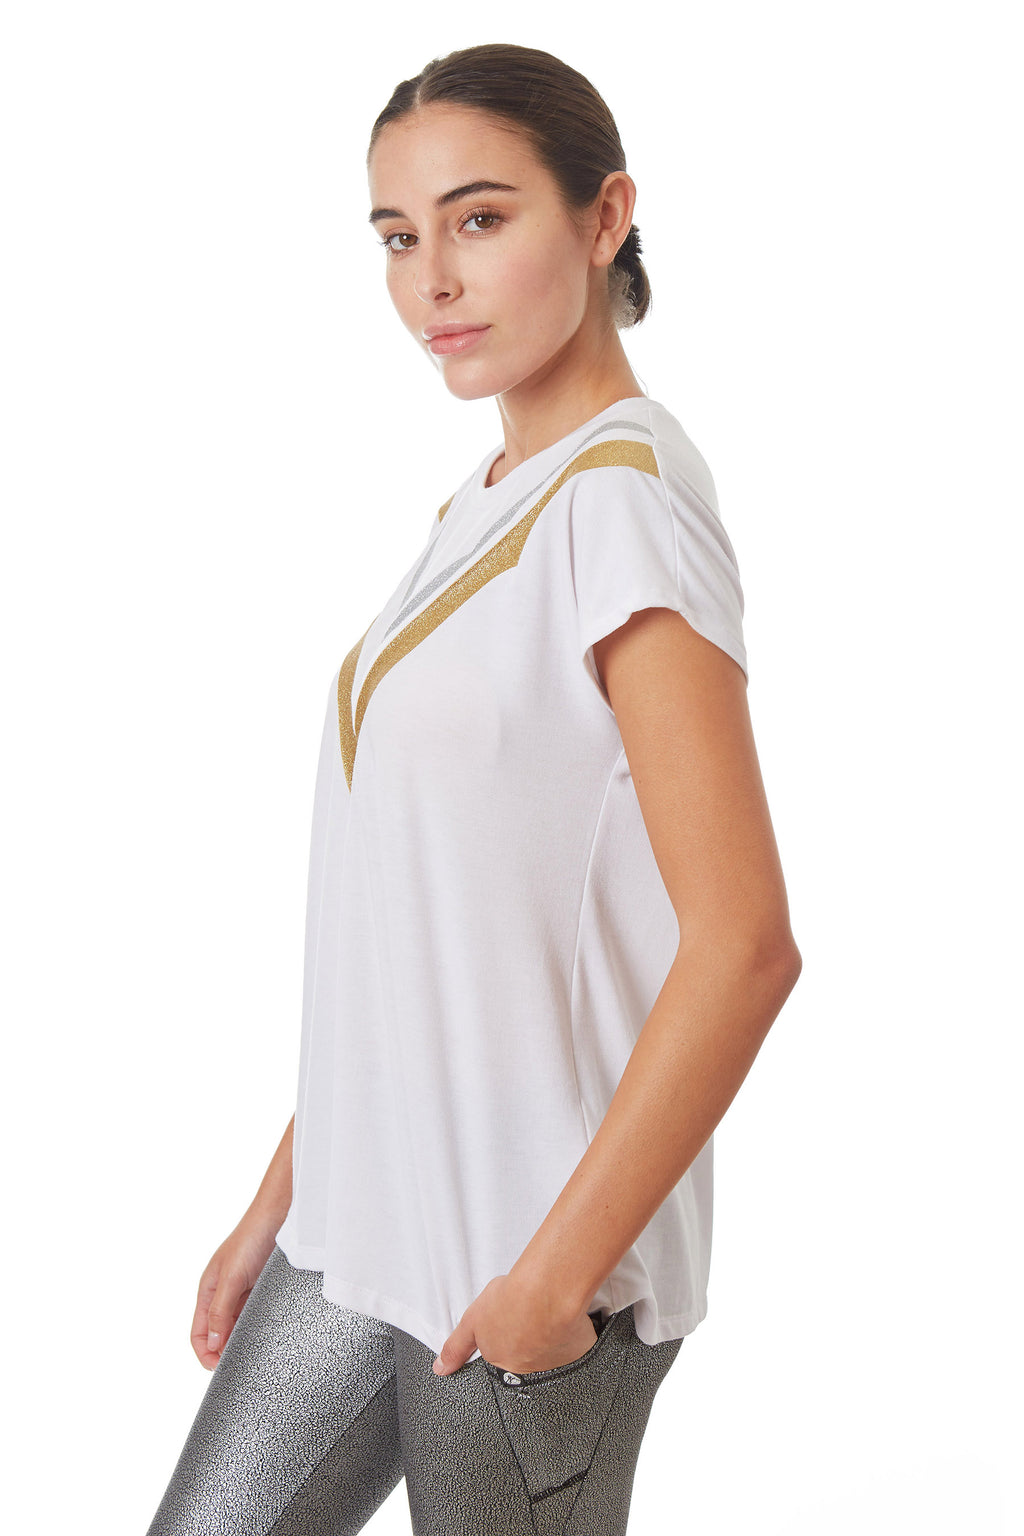 Gottex Studio Gold and Silver Open Back Top - Gottex Studio